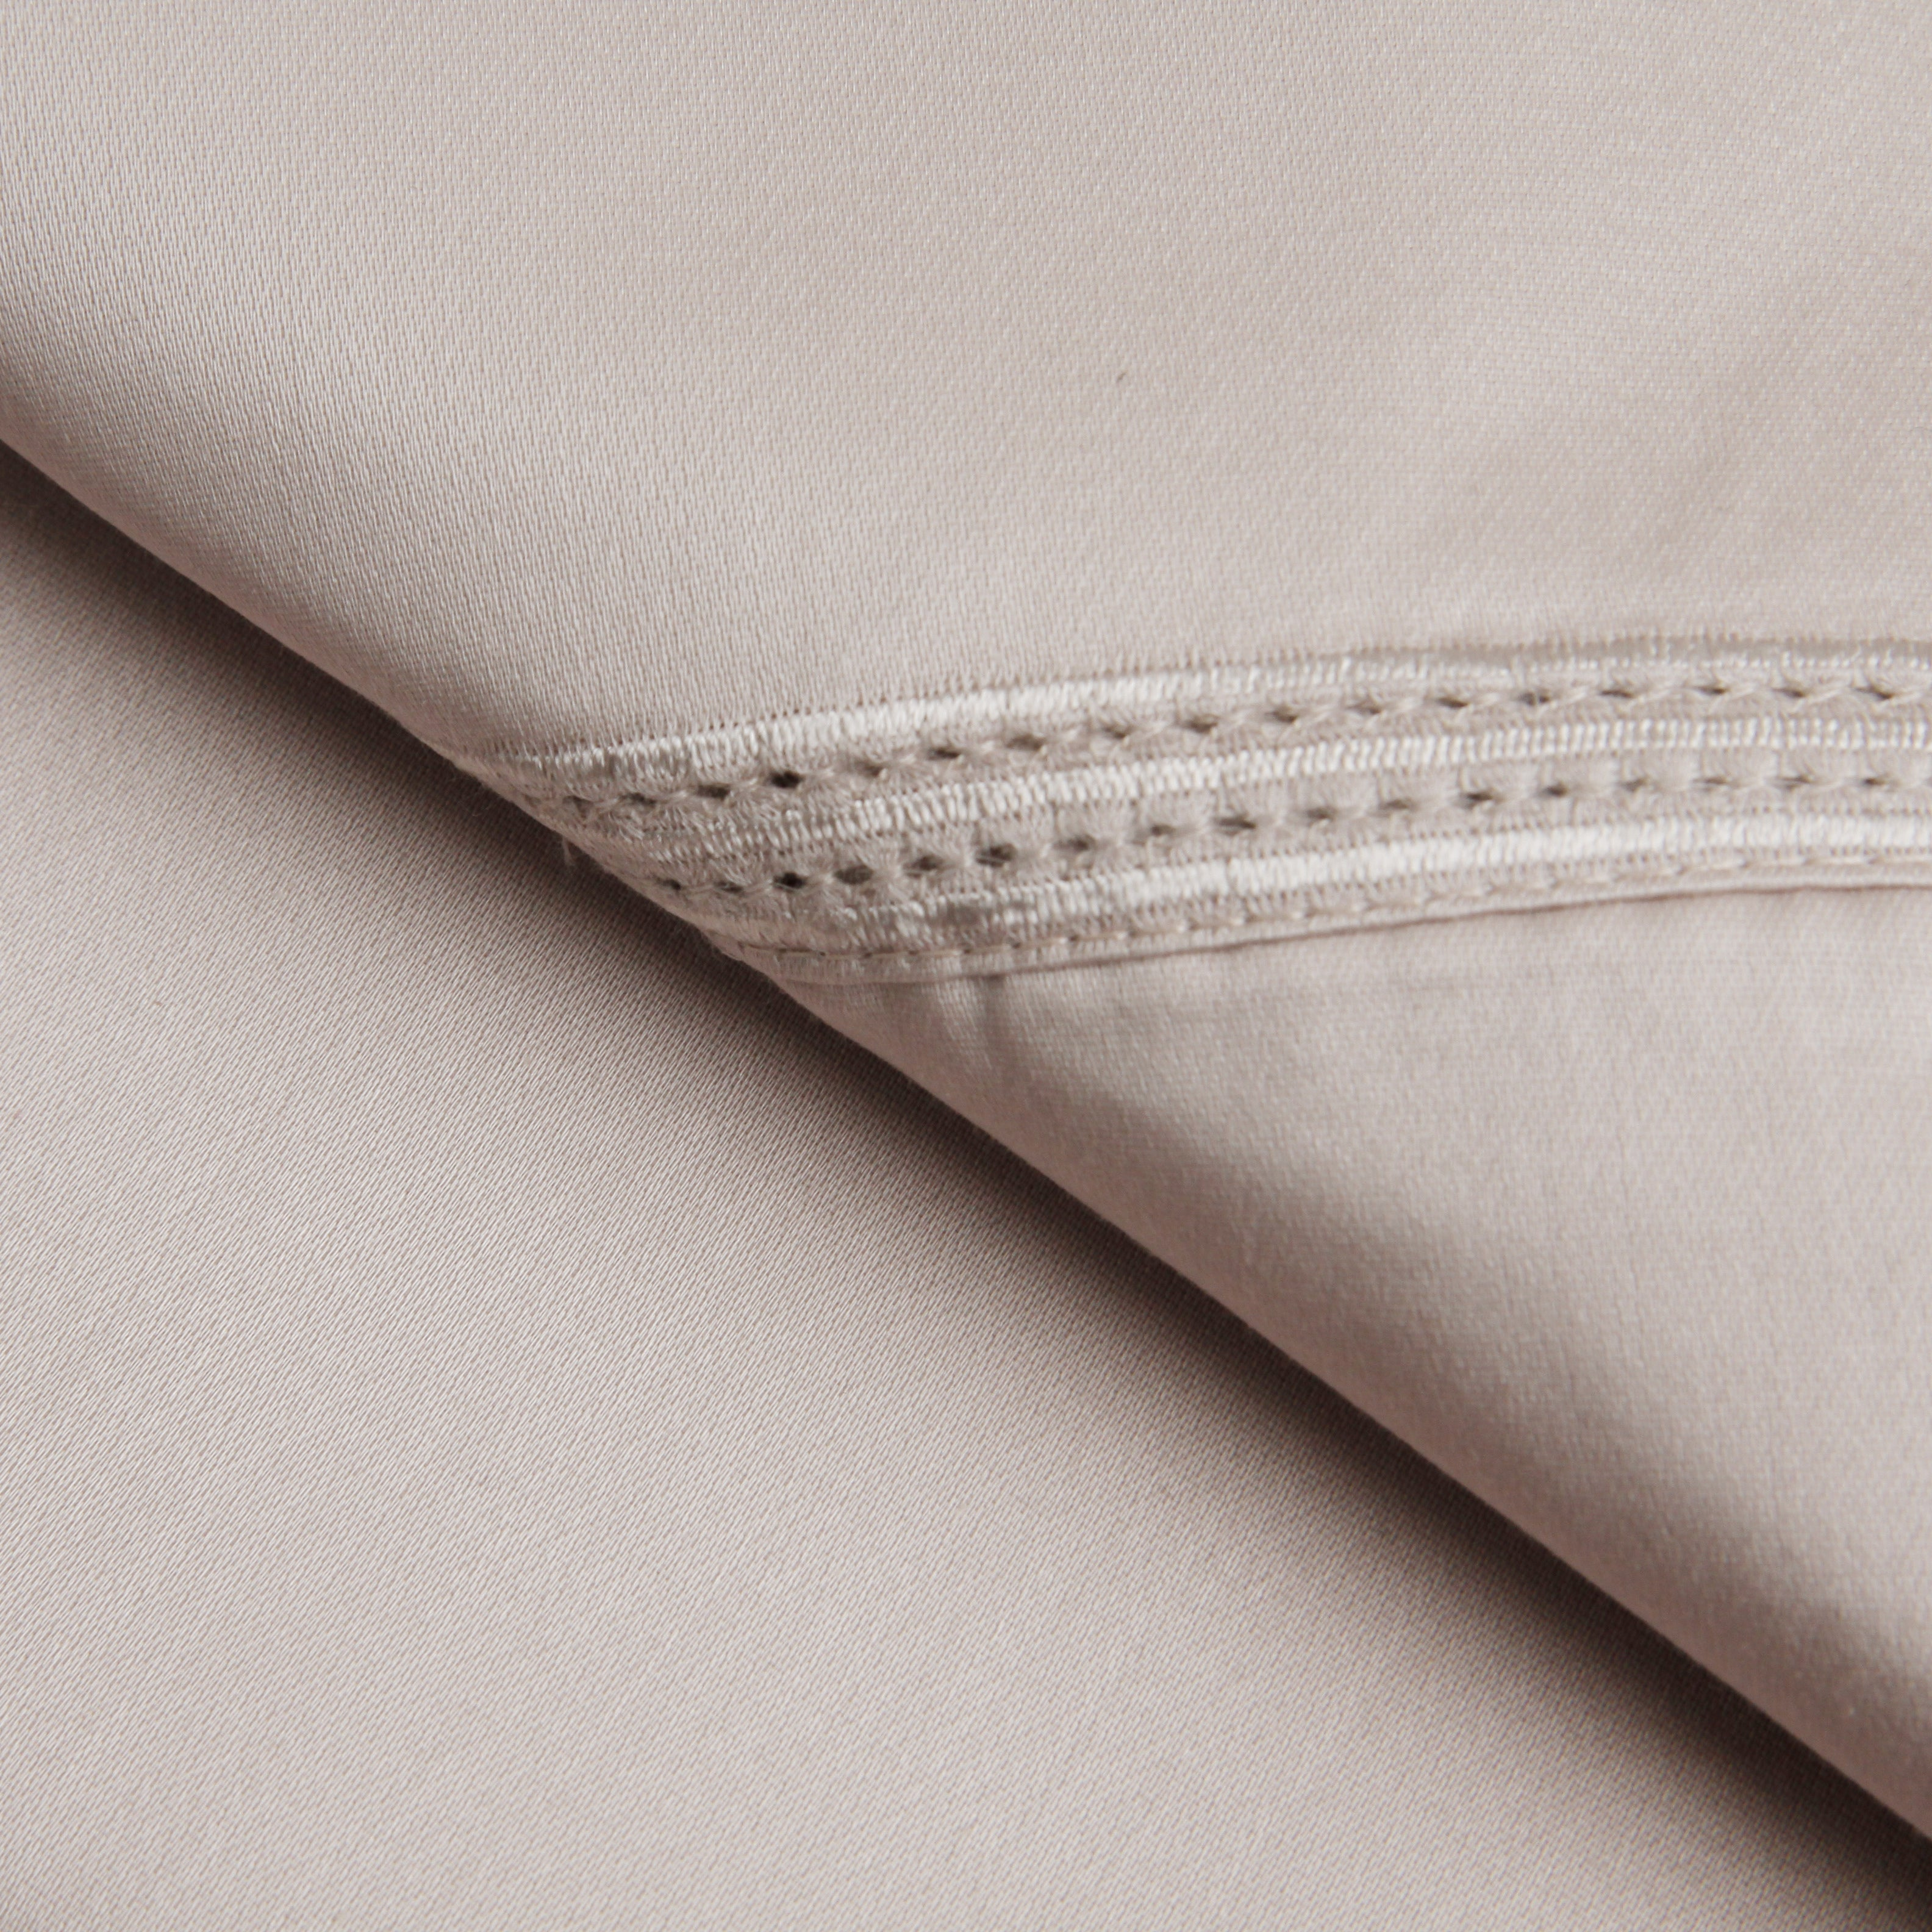 Hemstitch Embroidery Egyptian Cotton 800 Thread Count Sheet Set or